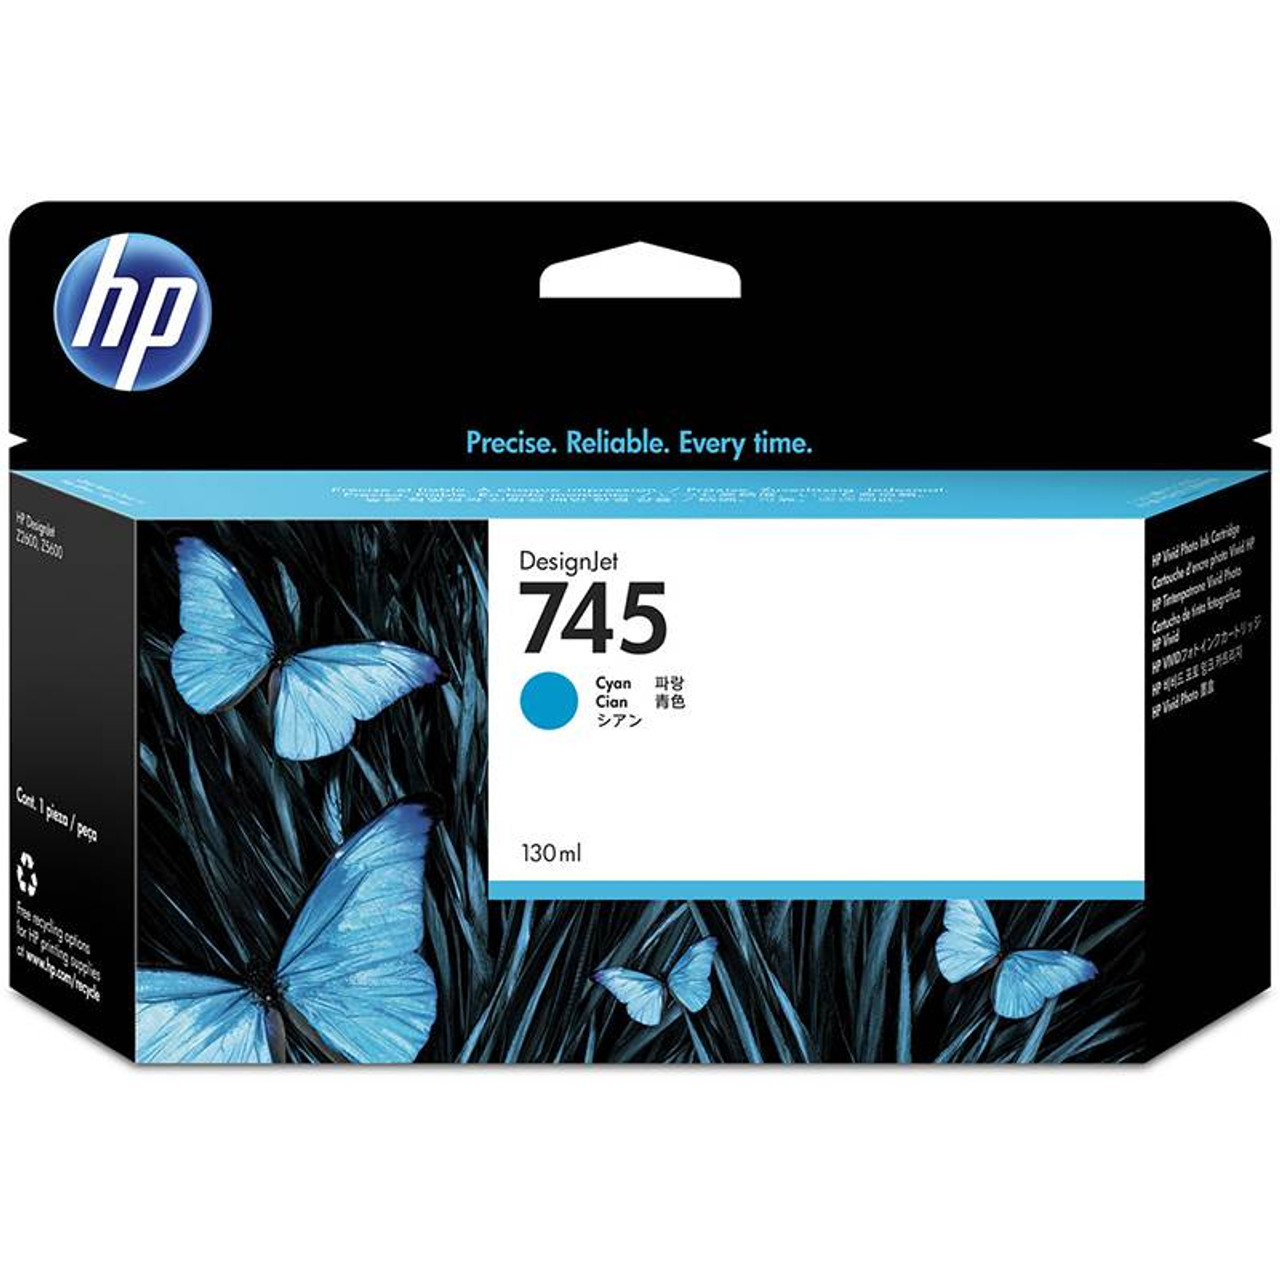 Image for HP745 130ML Ink Cartridge - Cyan (F9J97A) CX Computer Superstore